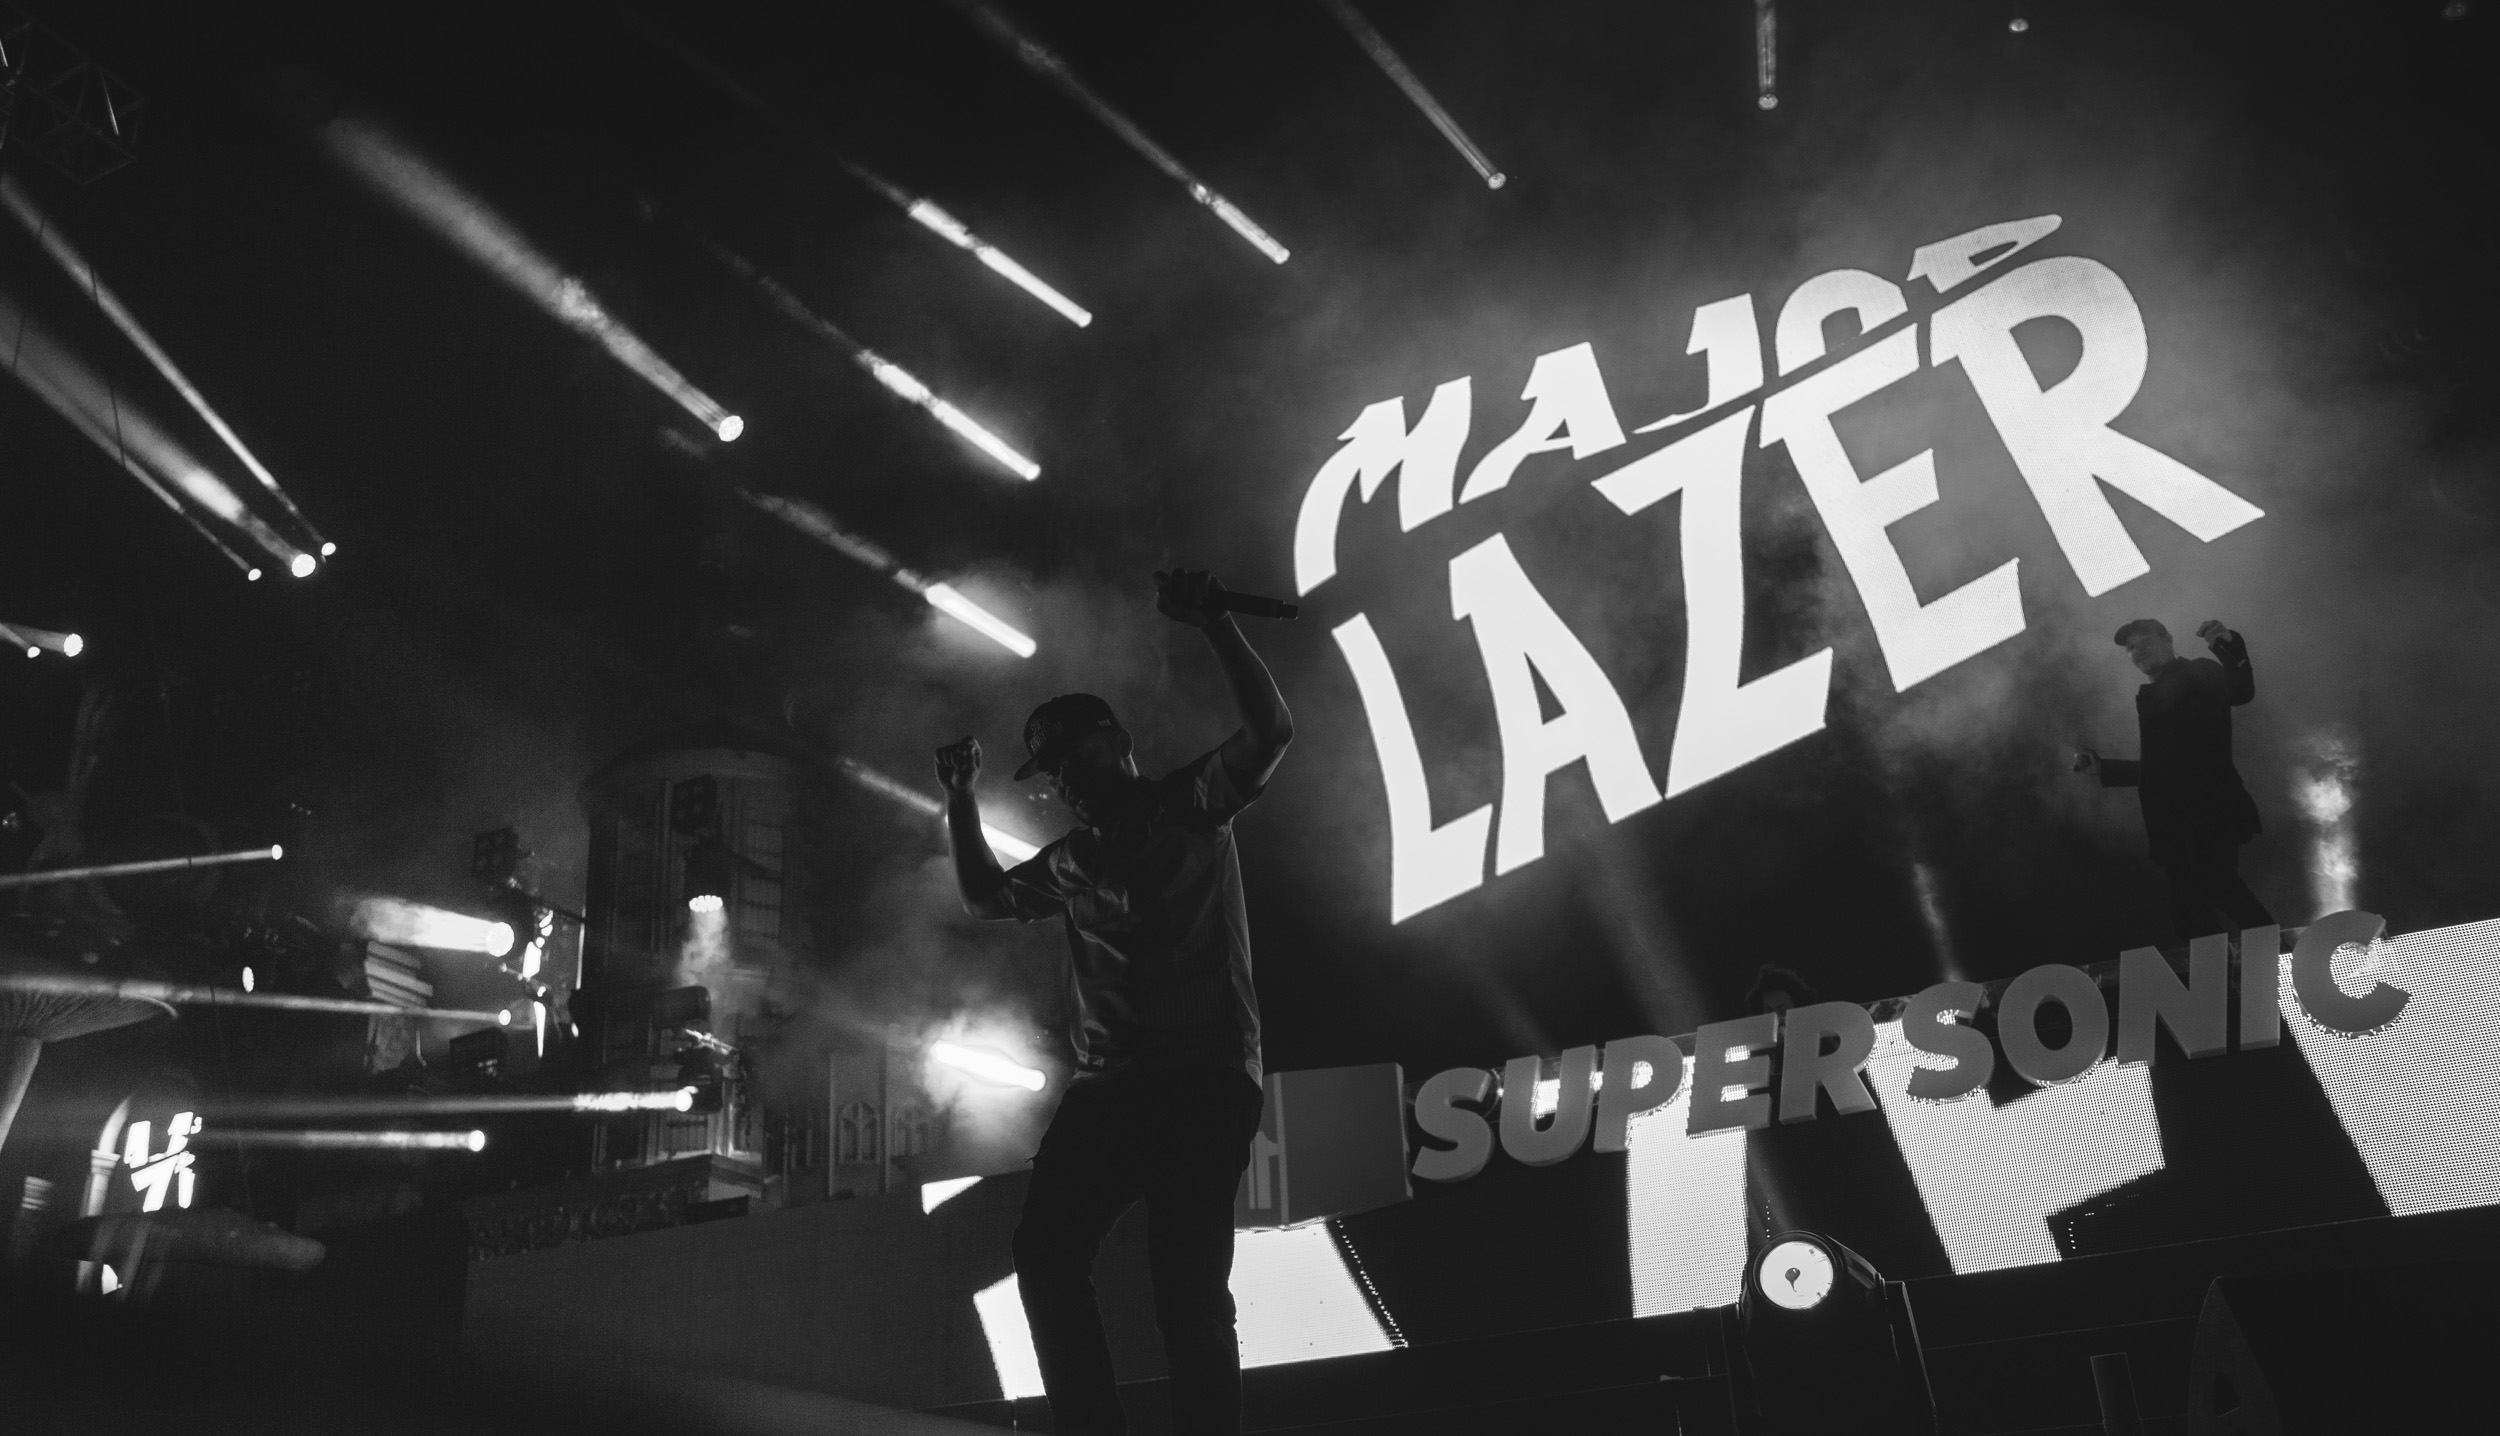 Major Lazer in Pune, India